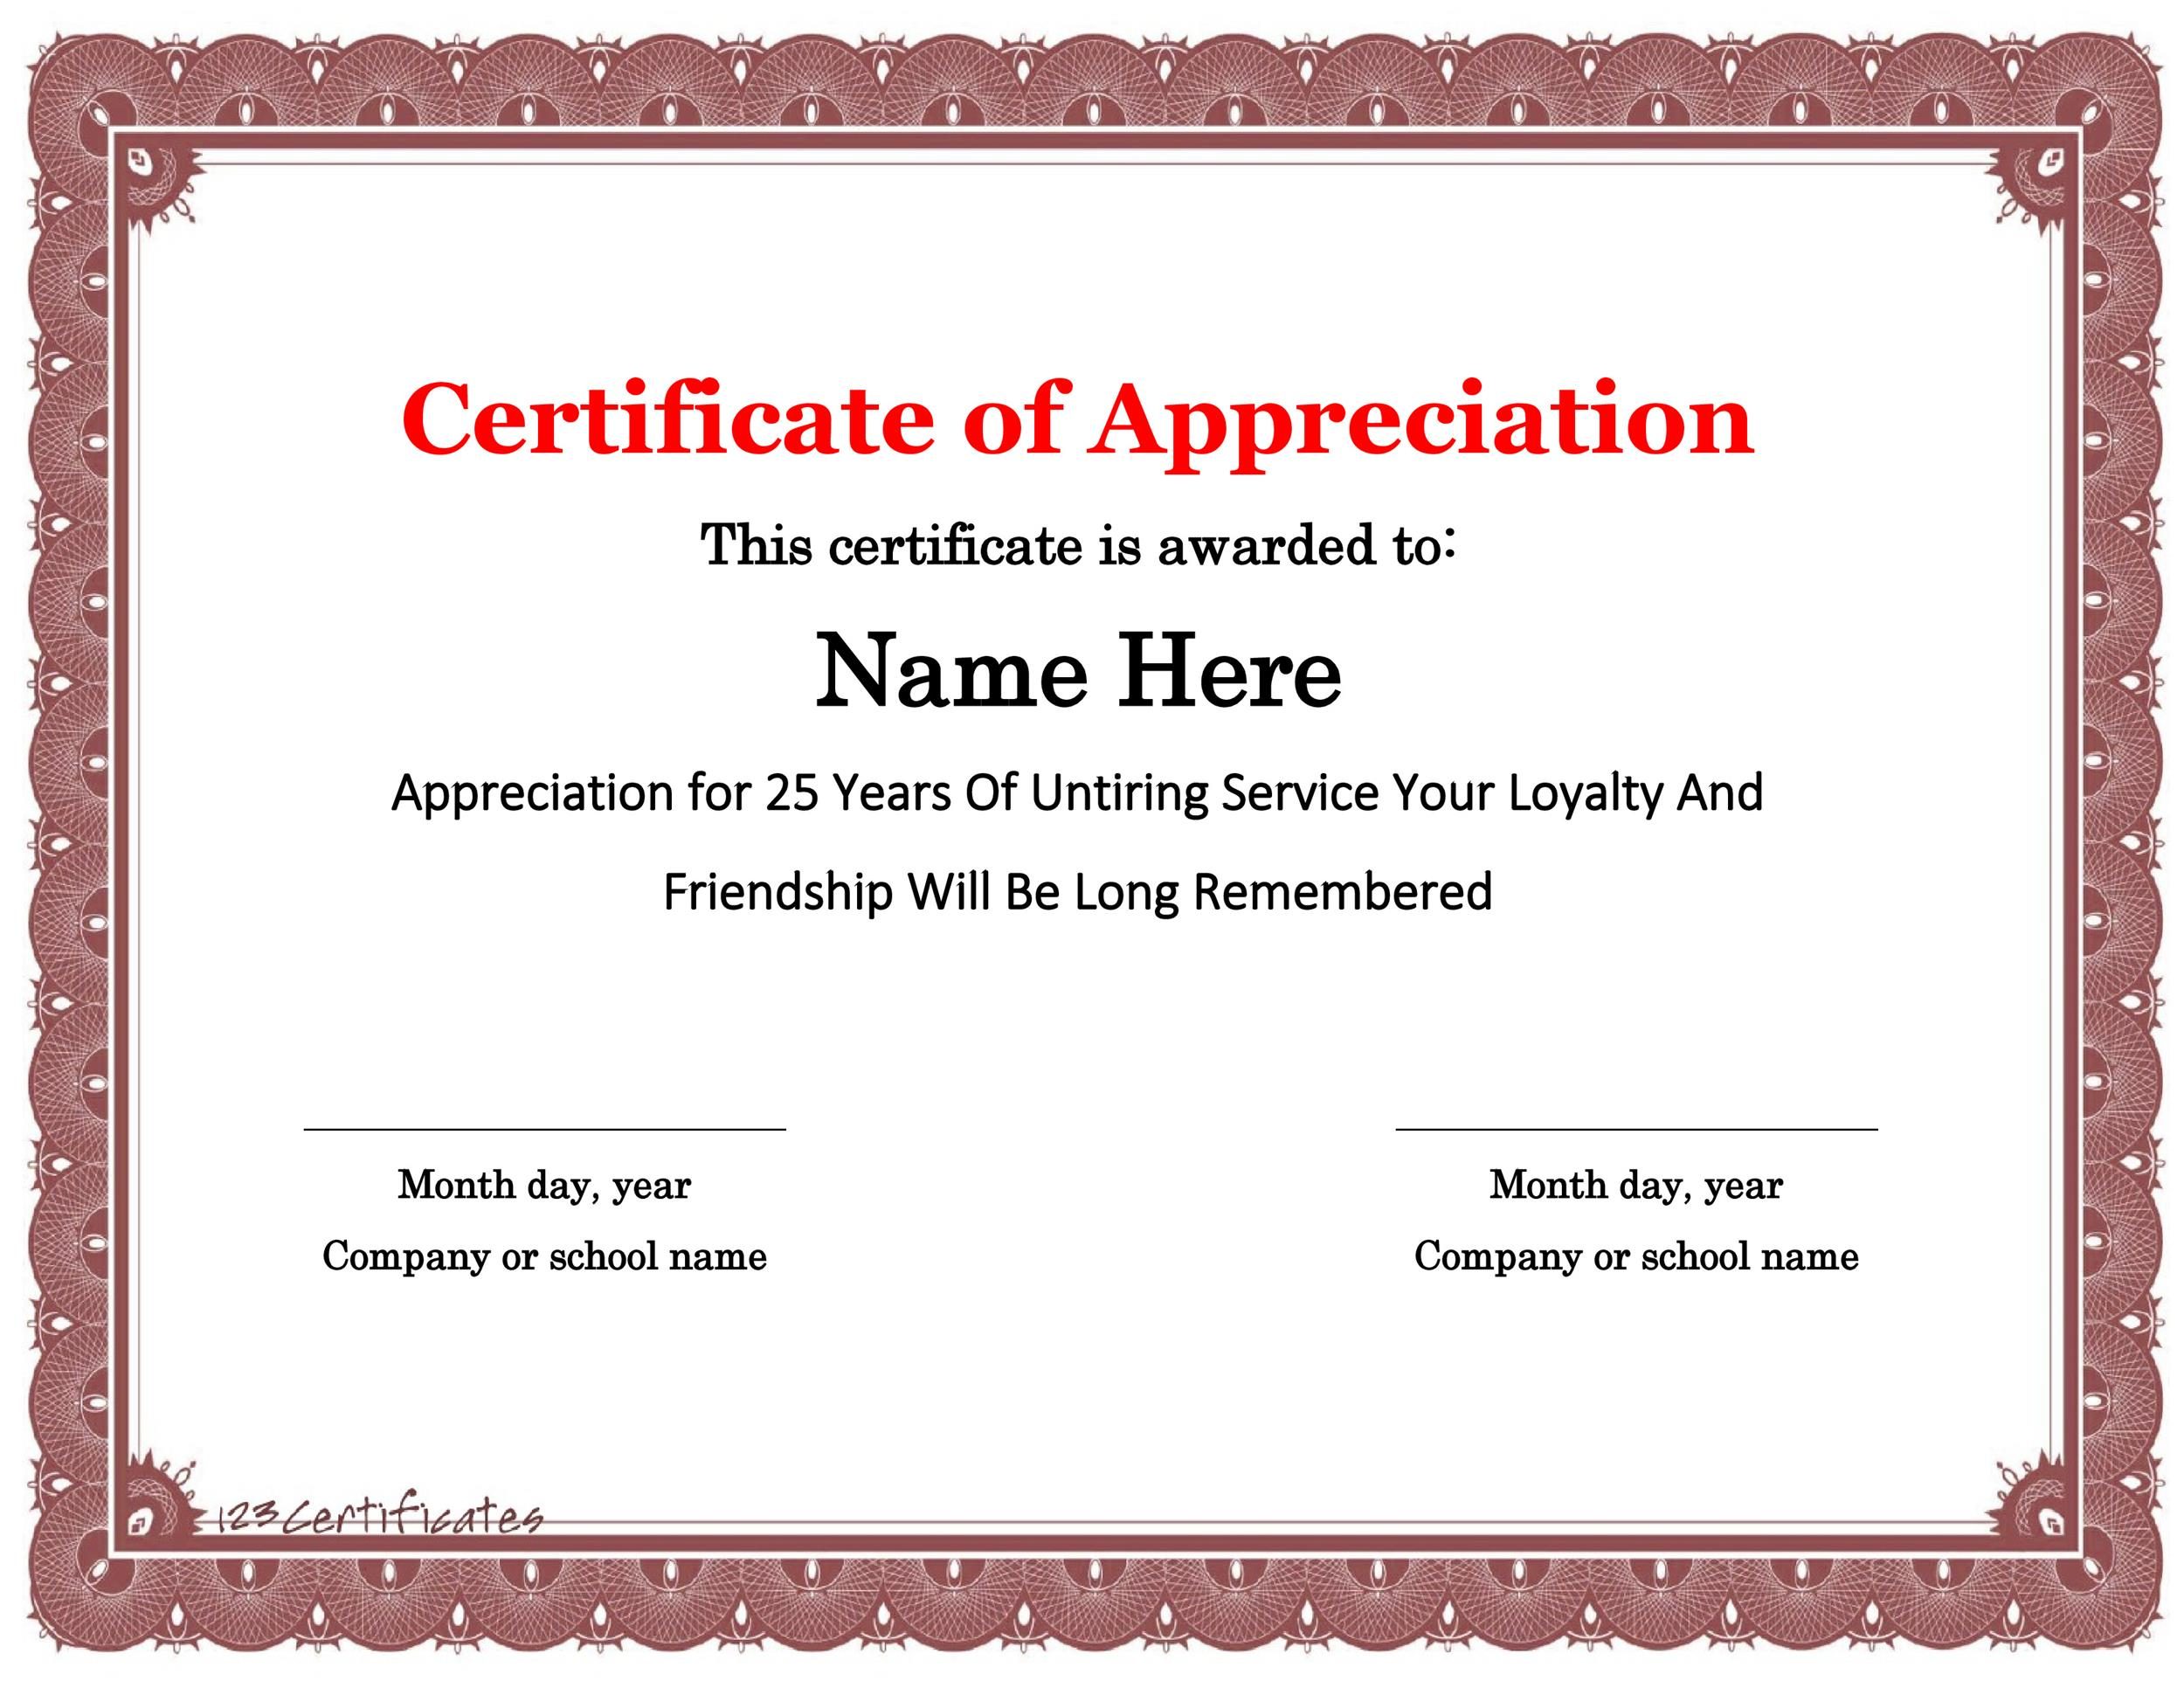 Free Certificate of Appreciation 20